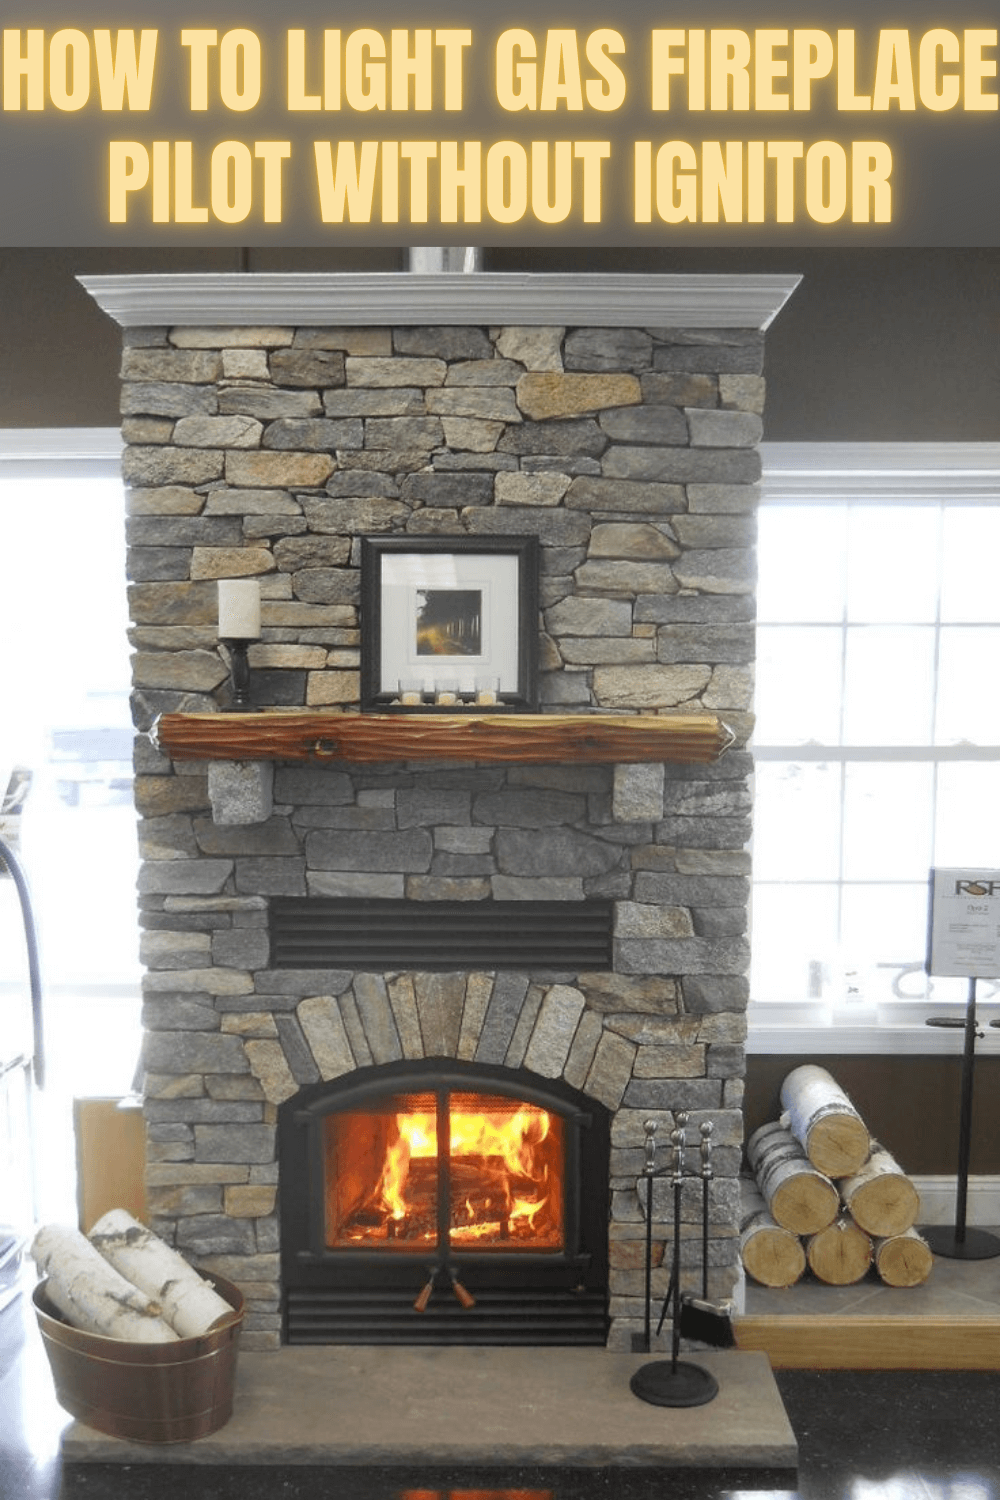 HOW TO LIGHT GAS FIREPLACE PILOT WITHOUT IGNITOR